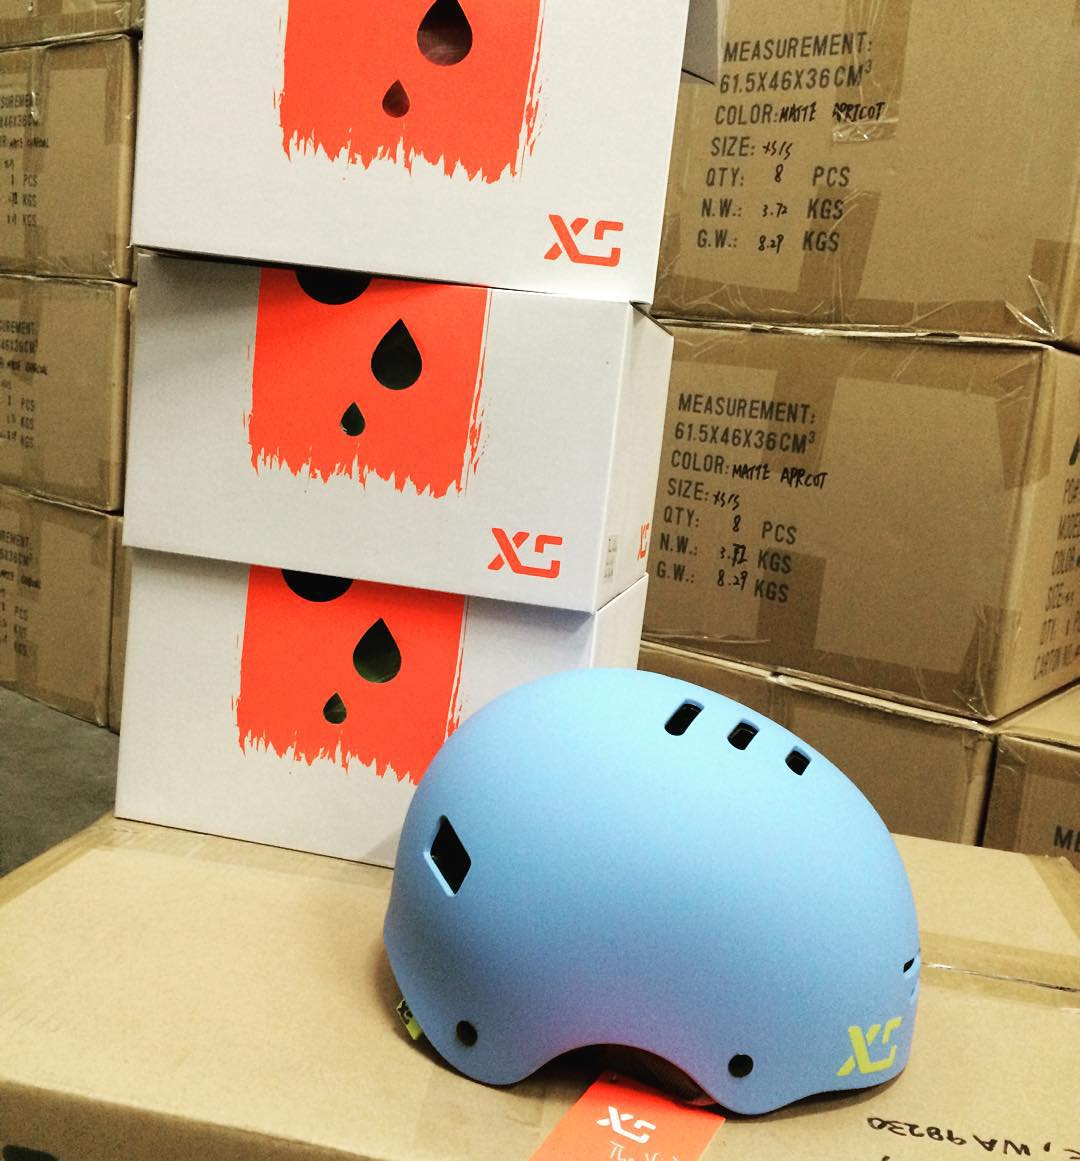 We are proud to support our friends @skatelikeagirl with our new kids helmet and Classic Skate helmets for their clinics! Skate Like A Girl is a unique organization focussed on encouraging women's skateboarding on a community level. #skateboarding...